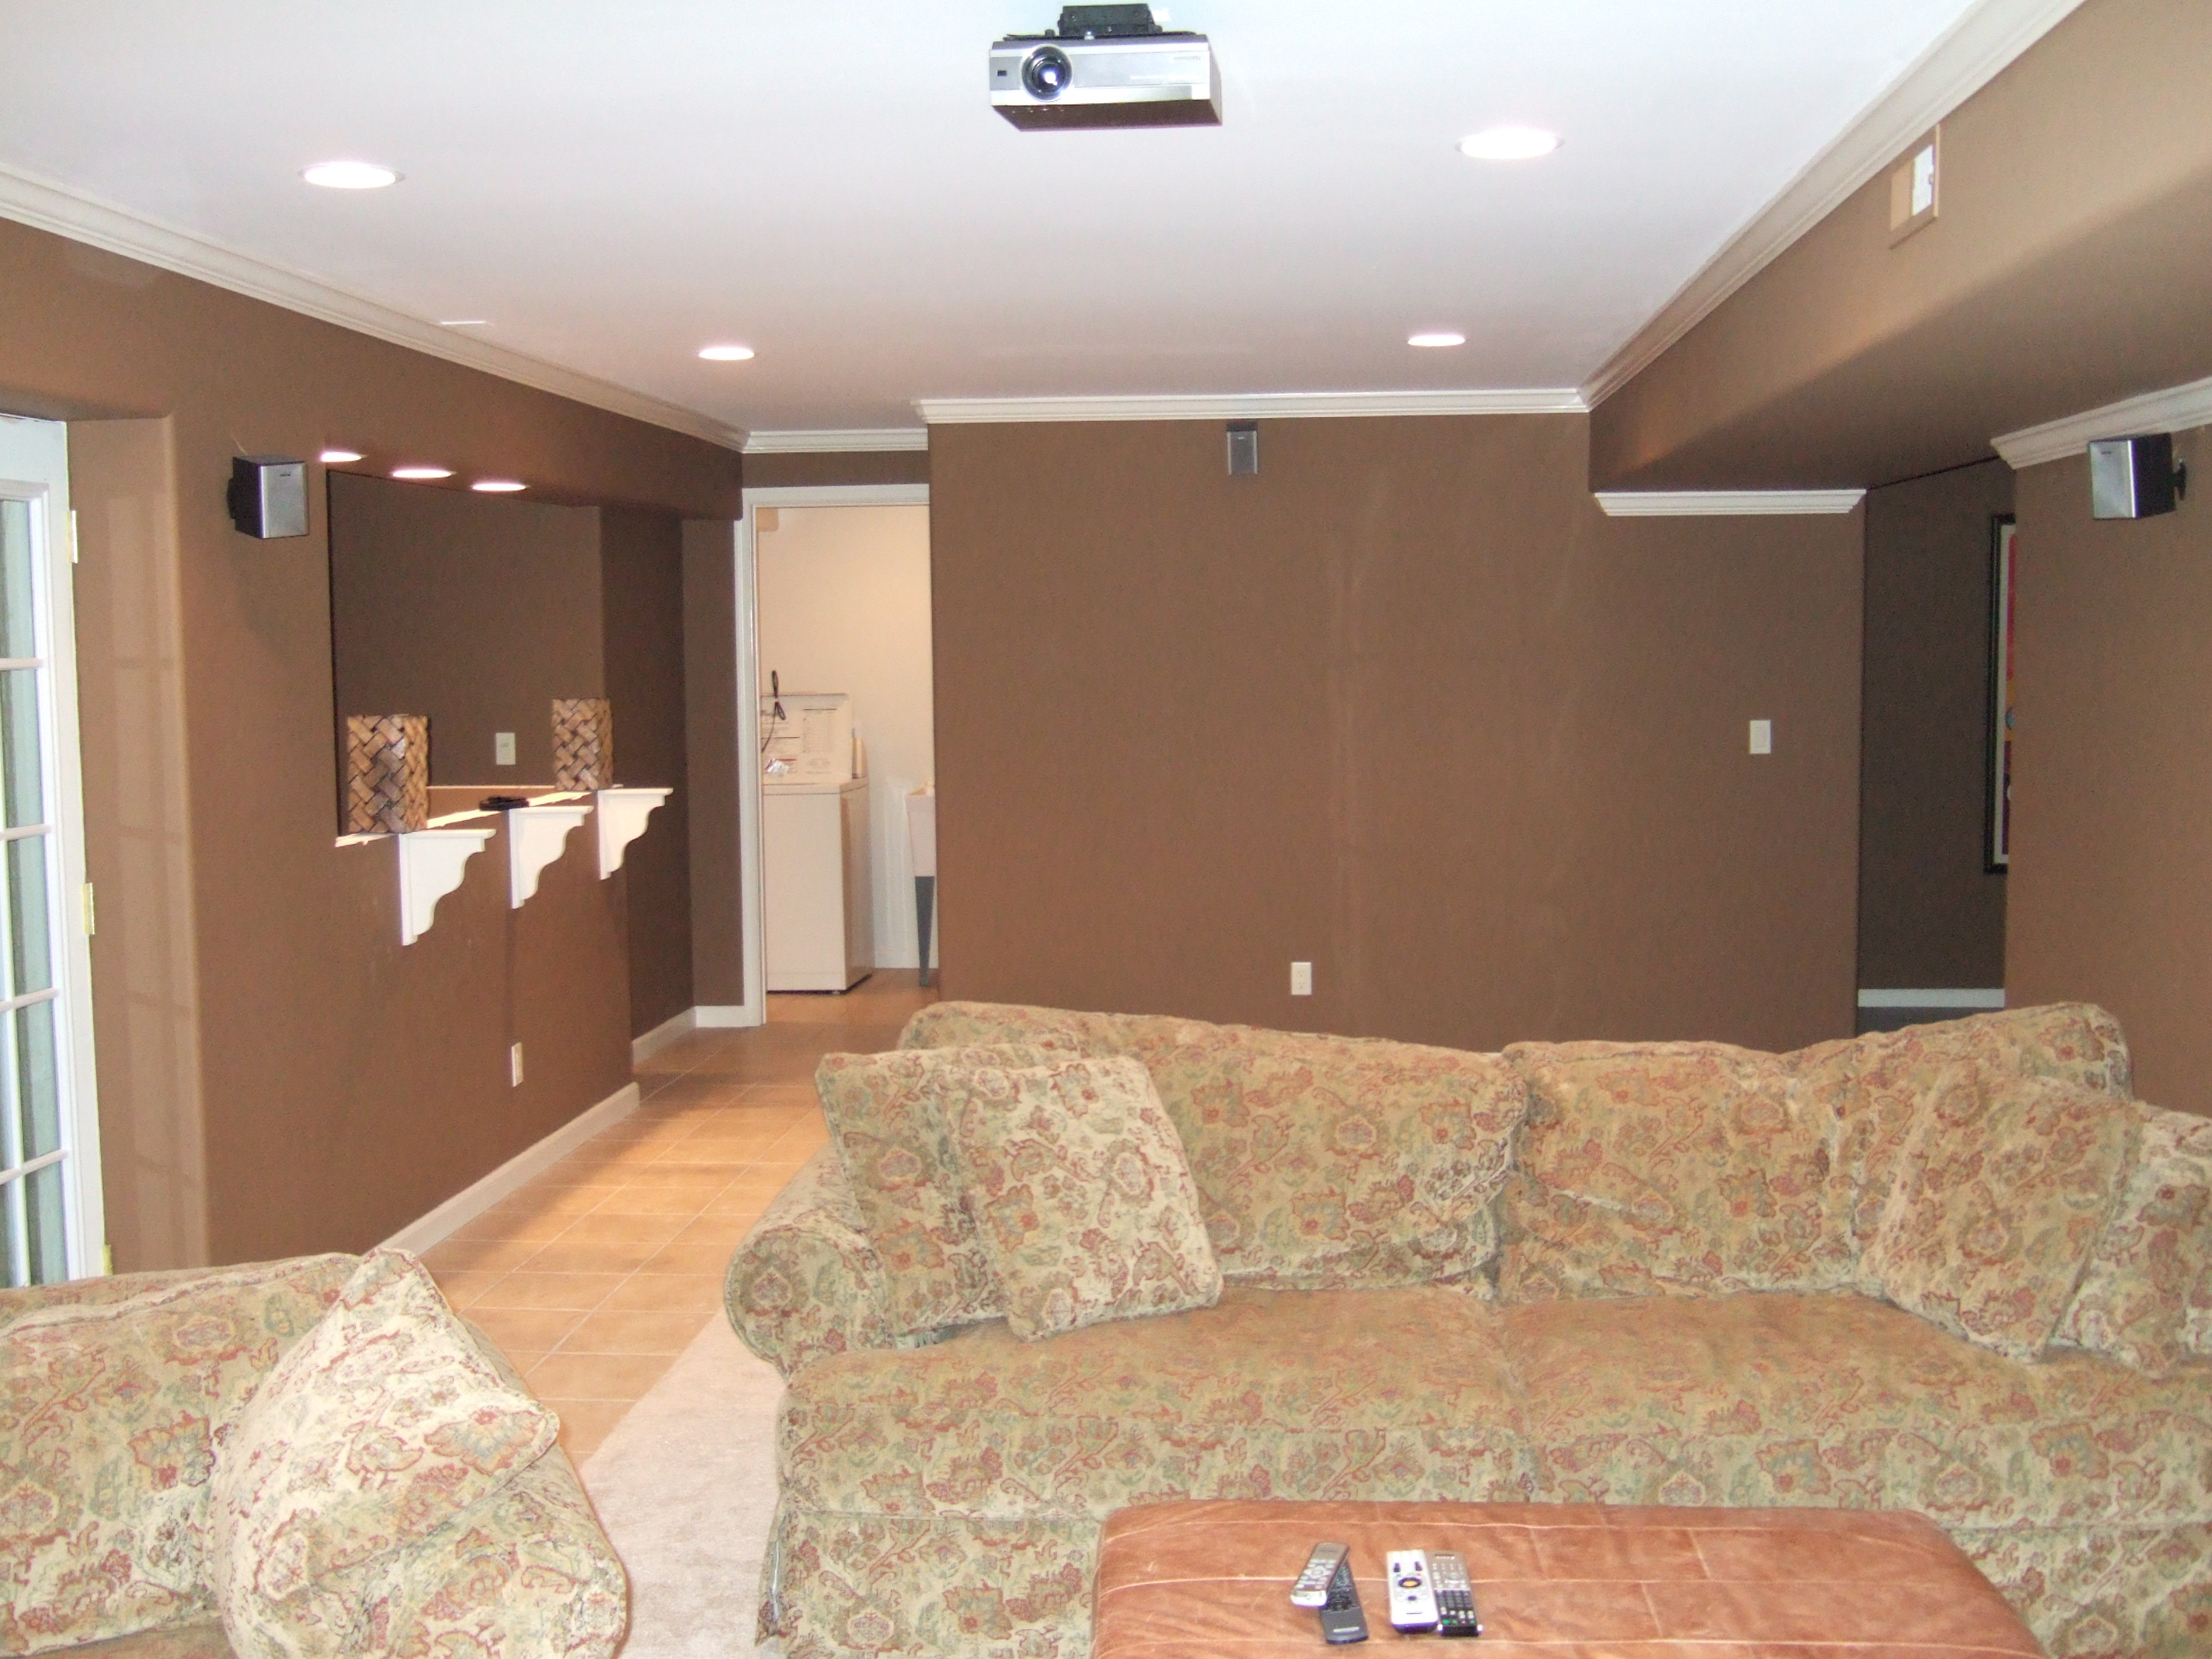 Finished Basement Ideas | 2848 x 2136 · 1476 kB · jpeg